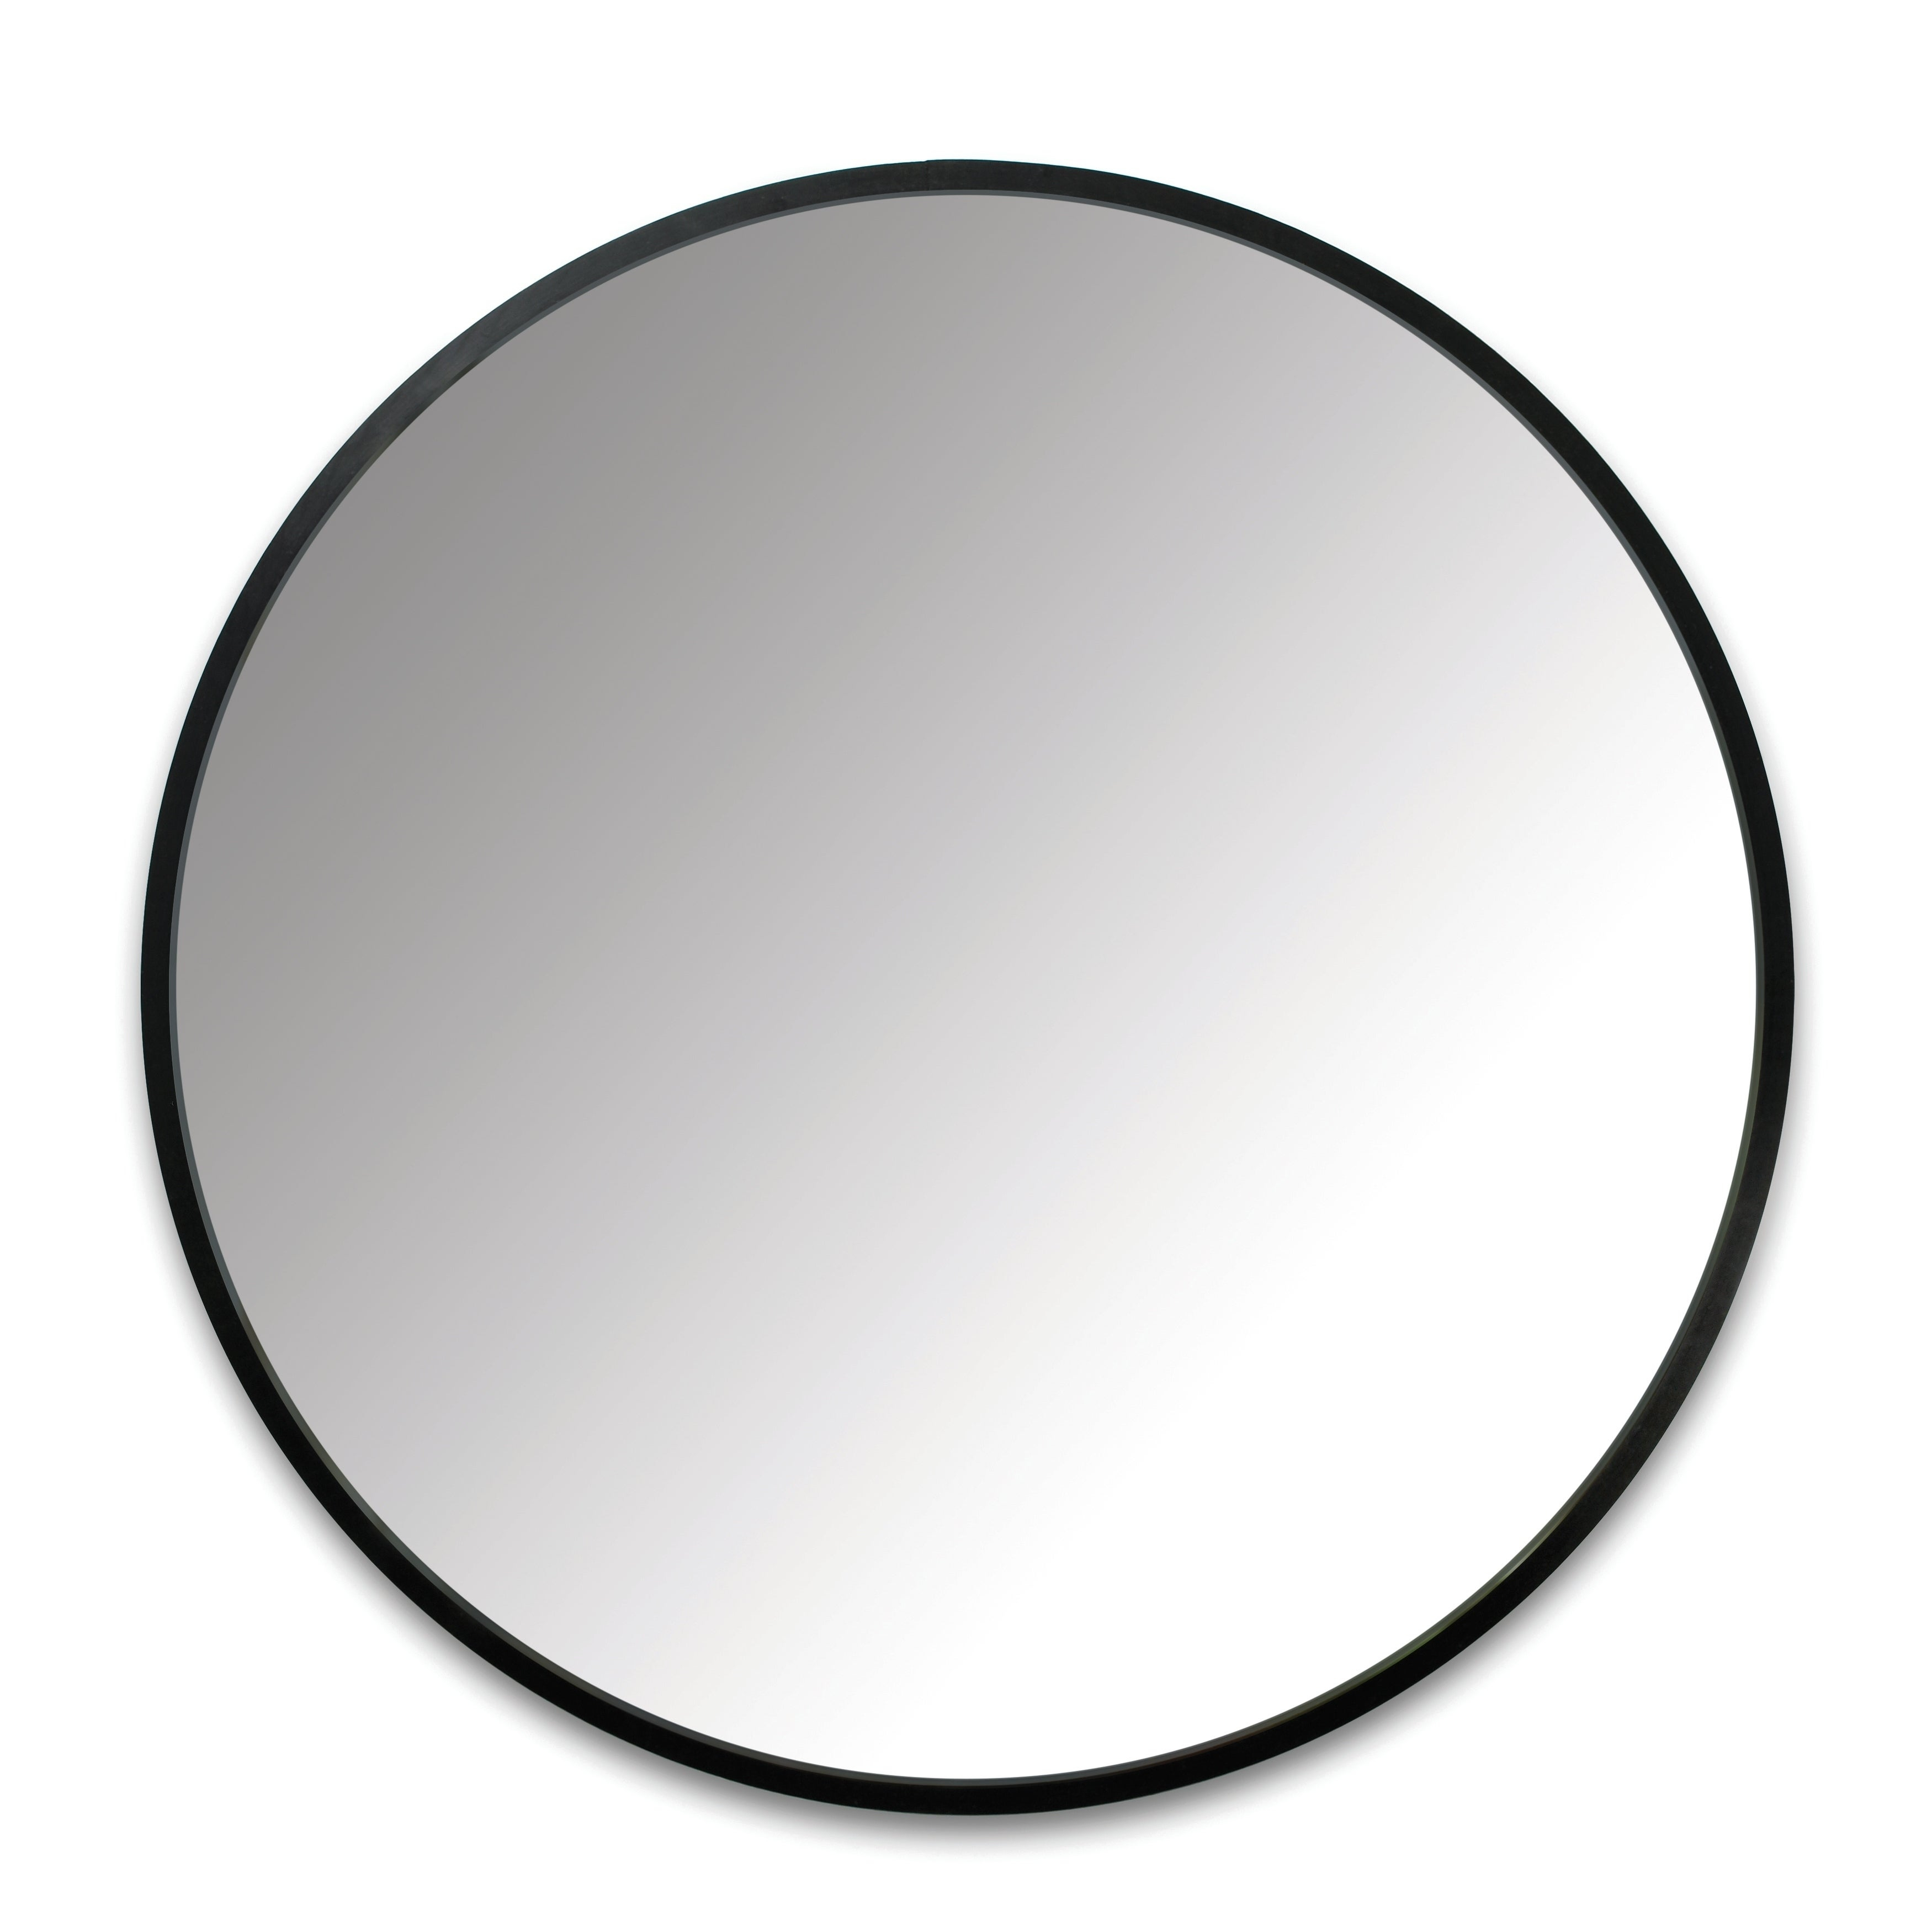 Modern & Contemporary Mirrors | Shop Online At Overstock In Guidinha Modern & Contemporary Accent Mirrors (View 12 of 20)